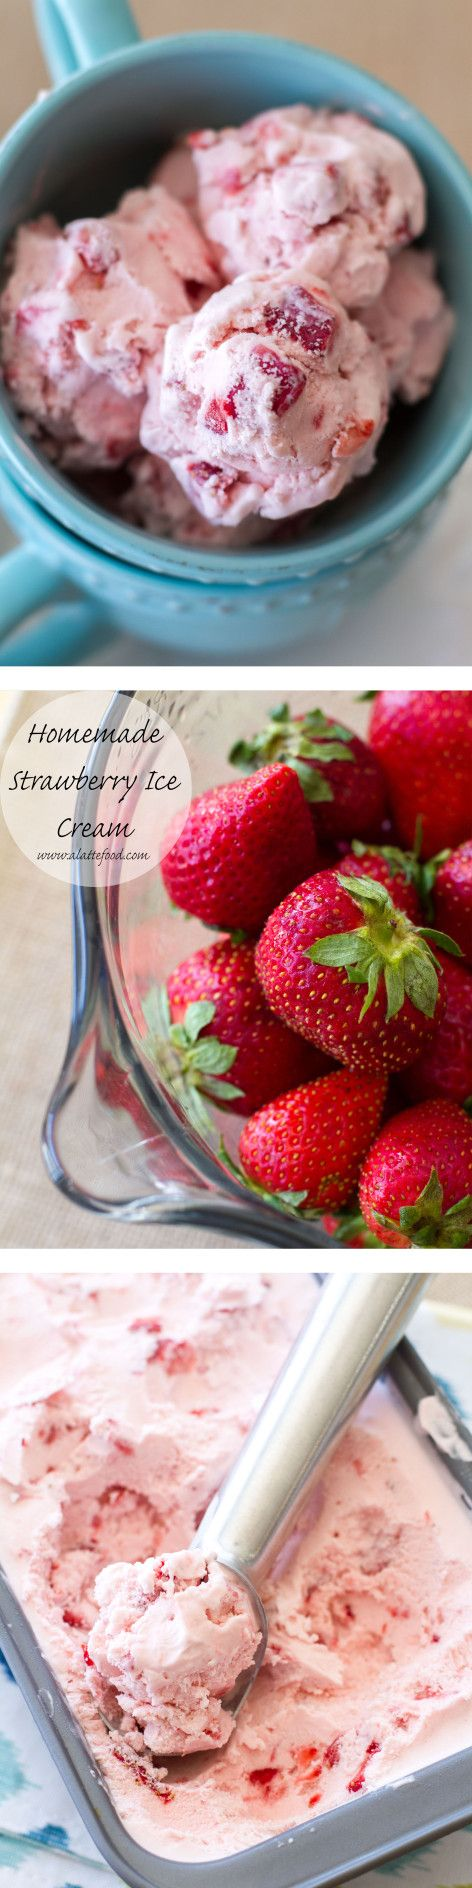 Homemade Strawberry Ice Cream: This  homemade strawberry ice cream is creamy, dreamy, and made with fresh strawberries. It is so delicious!   www.alattefood.com